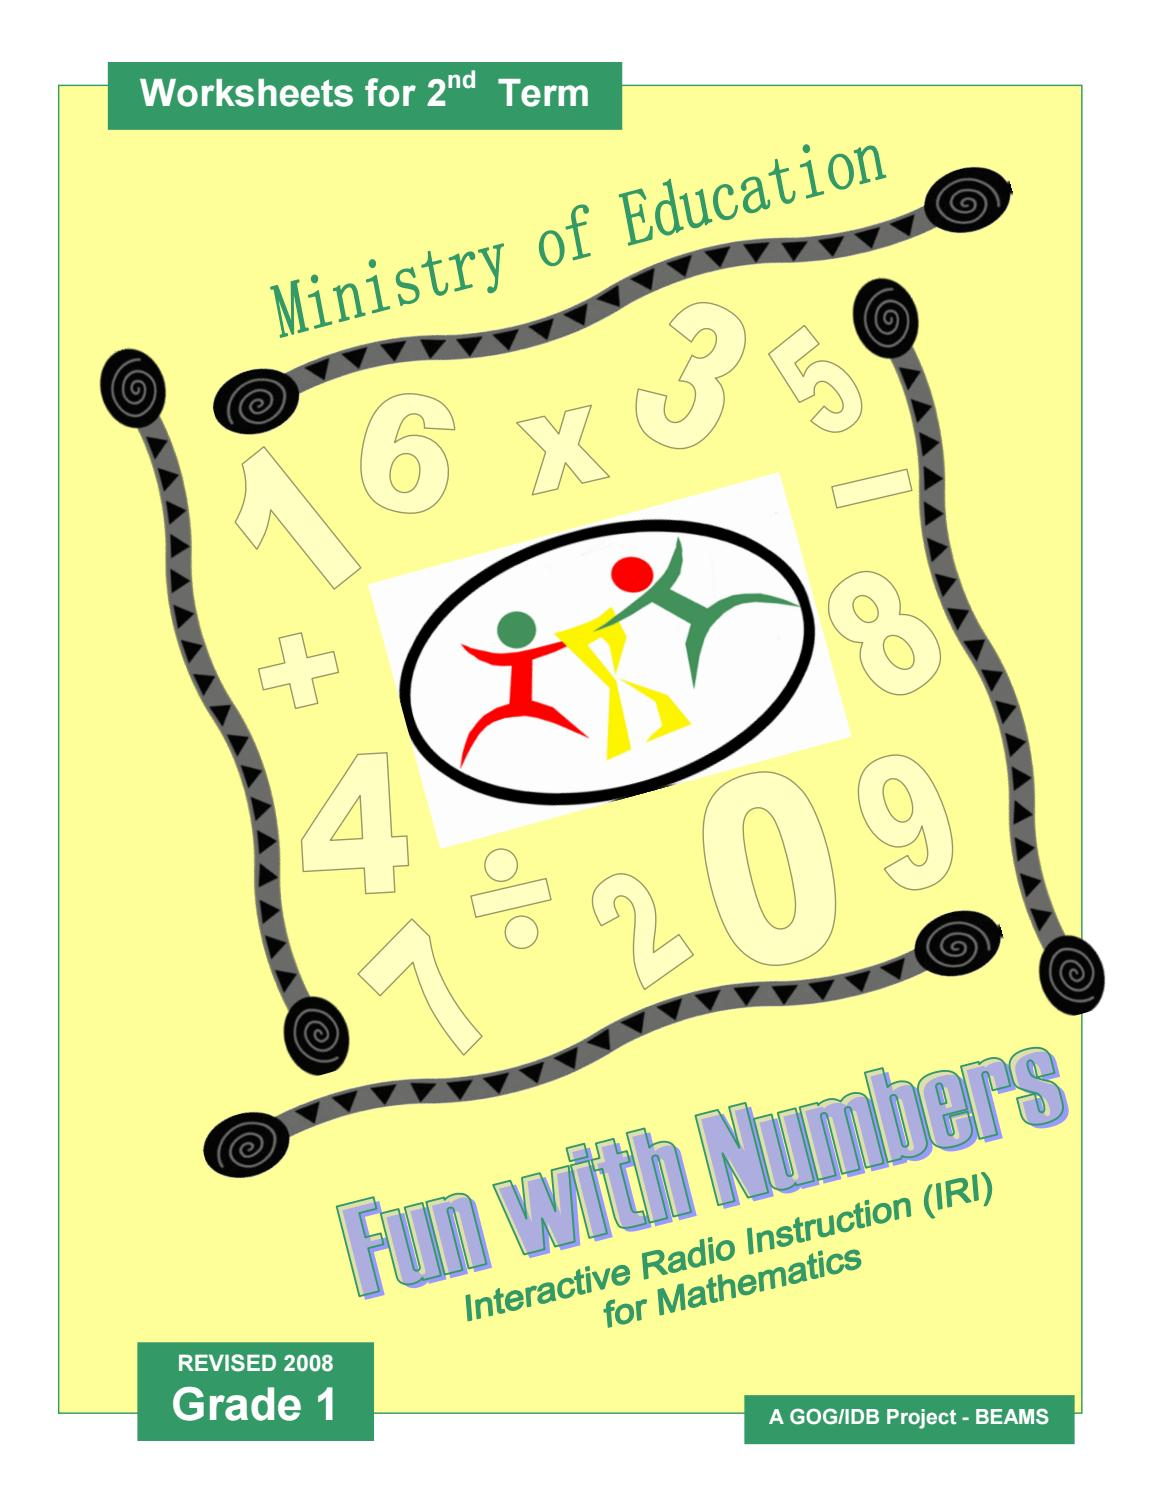 hight resolution of IRI Fun with Numbers Worksheets - Grade 1 - Term 2 by Ministry of Education  Guyana - issuu